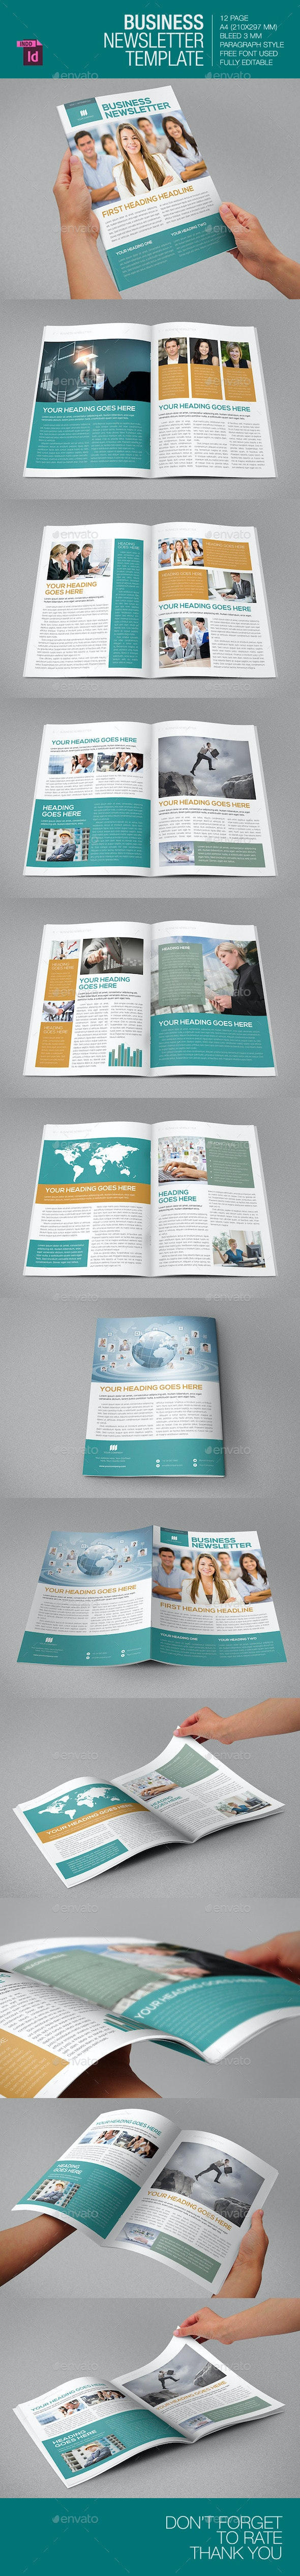 Business Newsletter Template - Newsletters Print Templates